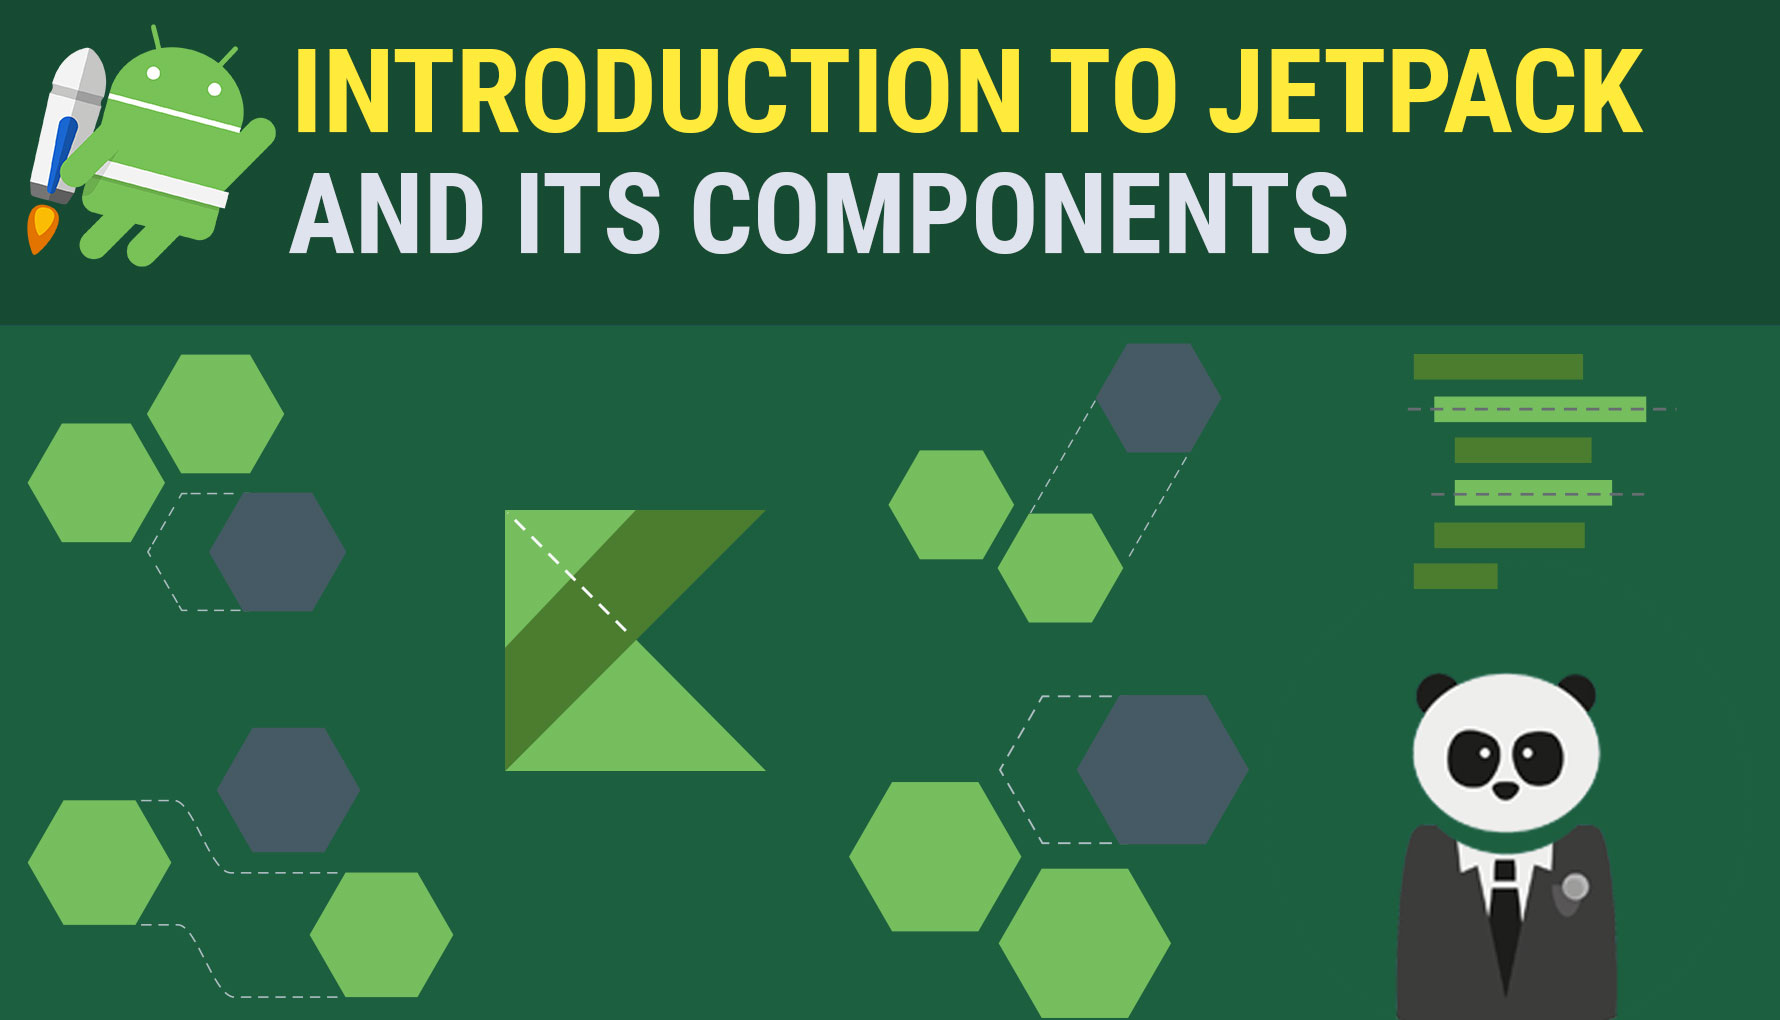 Introduction to Android Jetpack and its Components